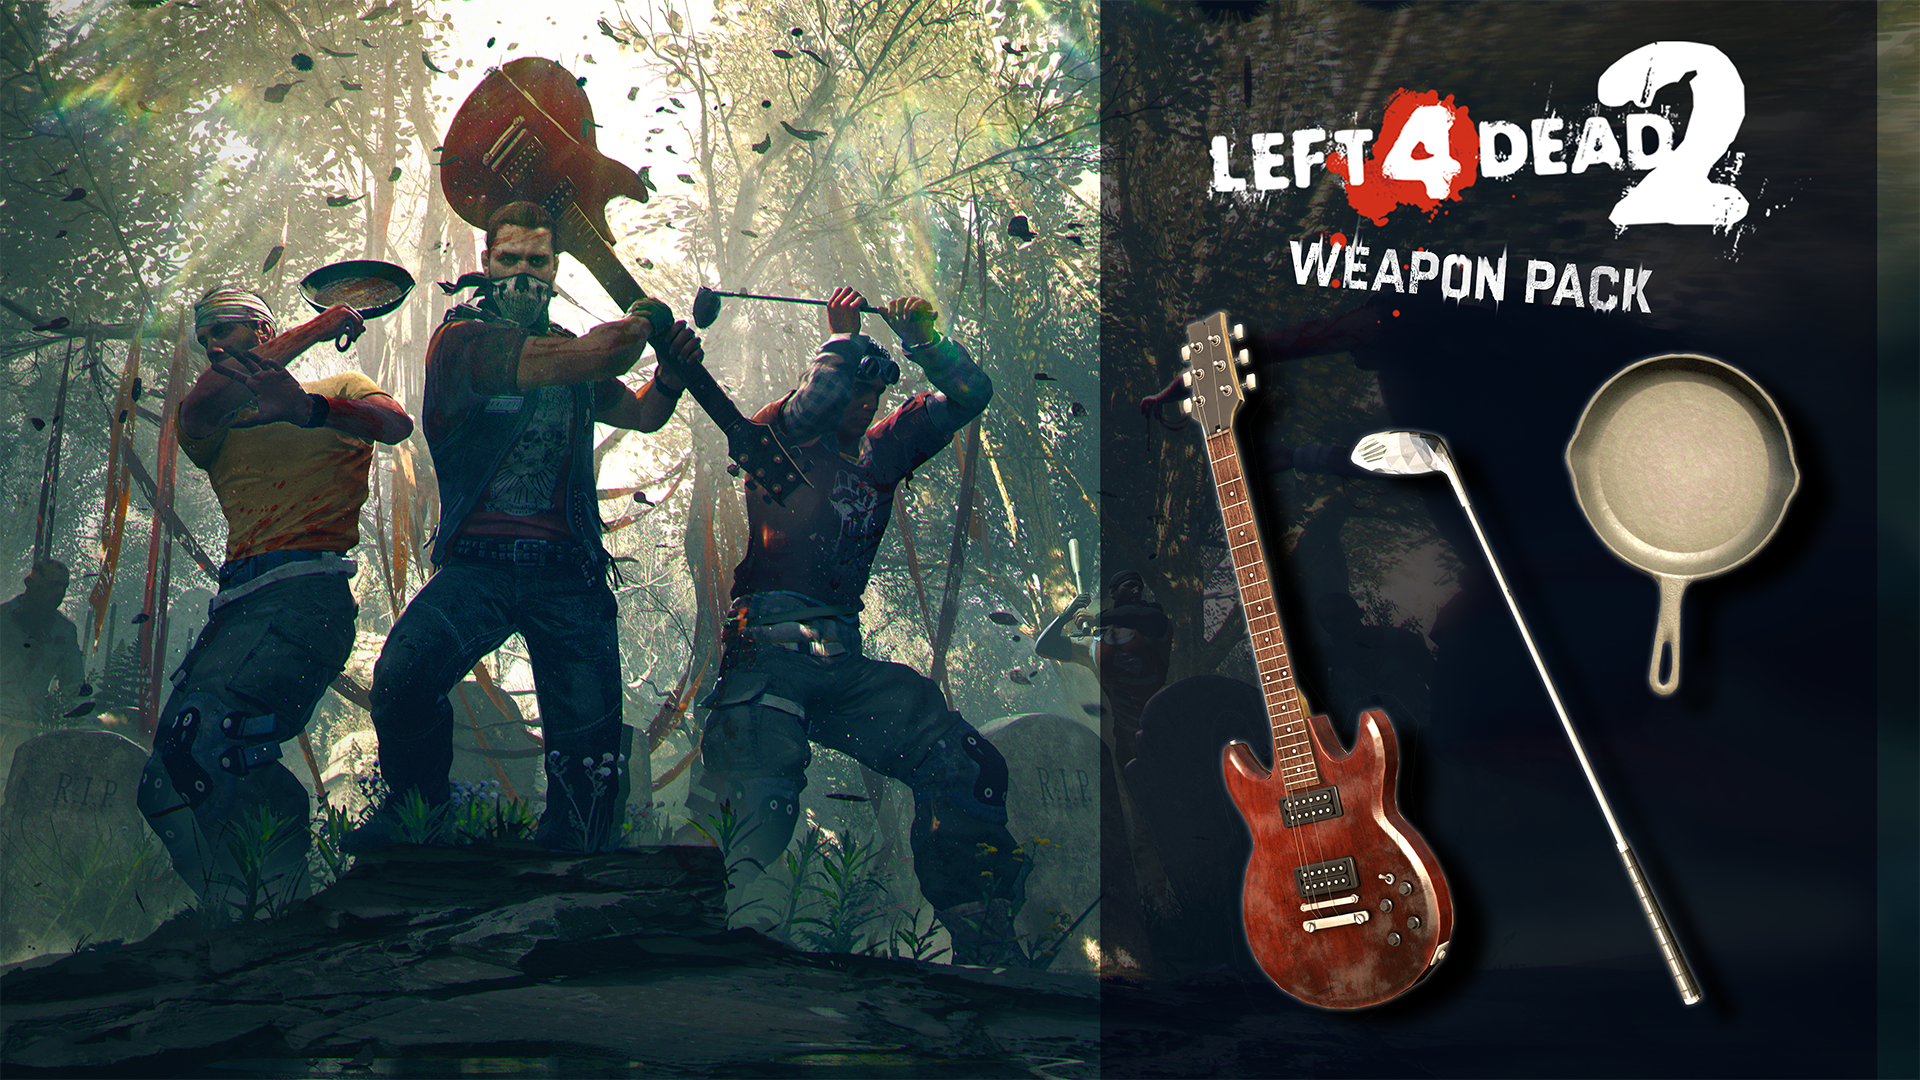 Dying Light weapons